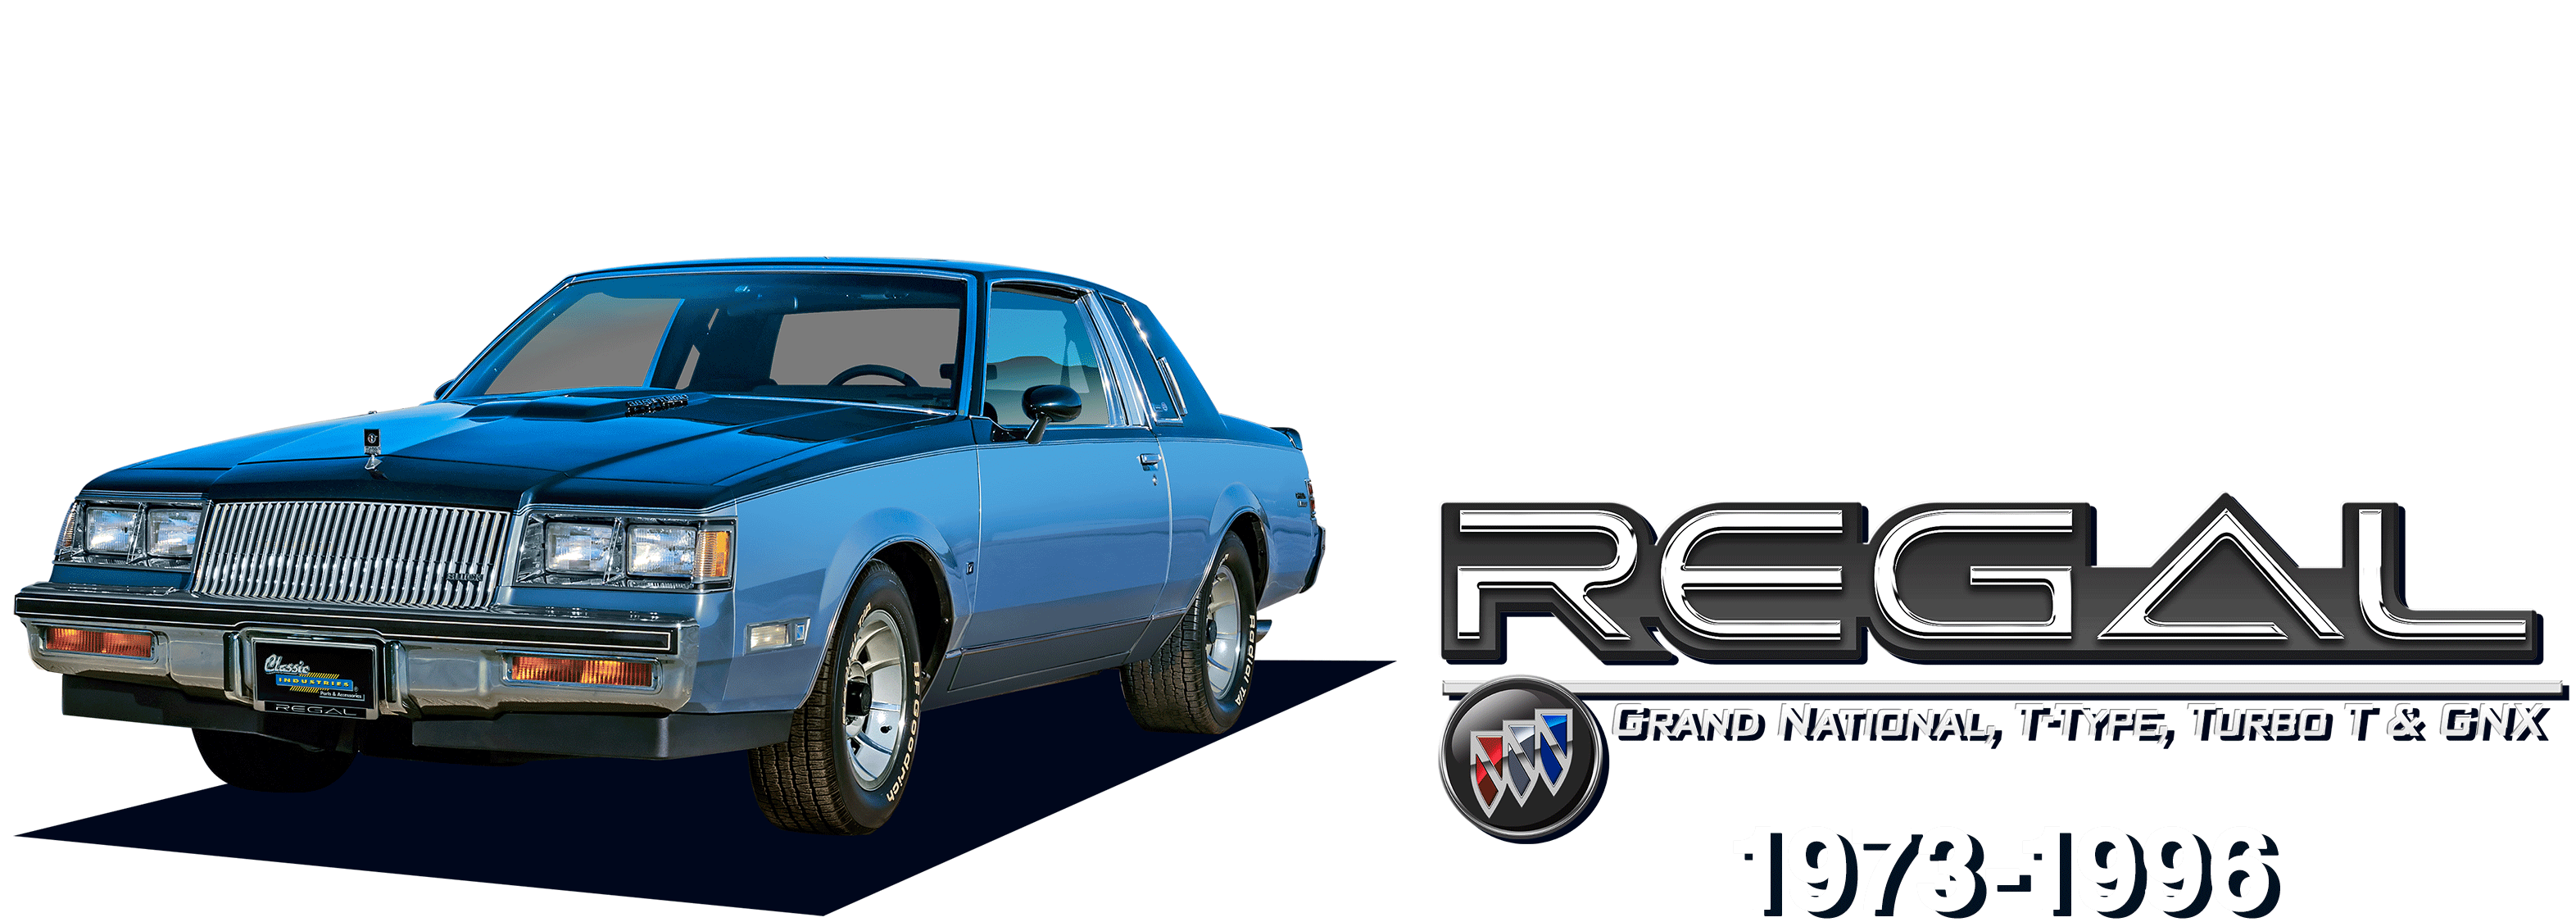 Regal-Prod-Vehicle-desktop.png